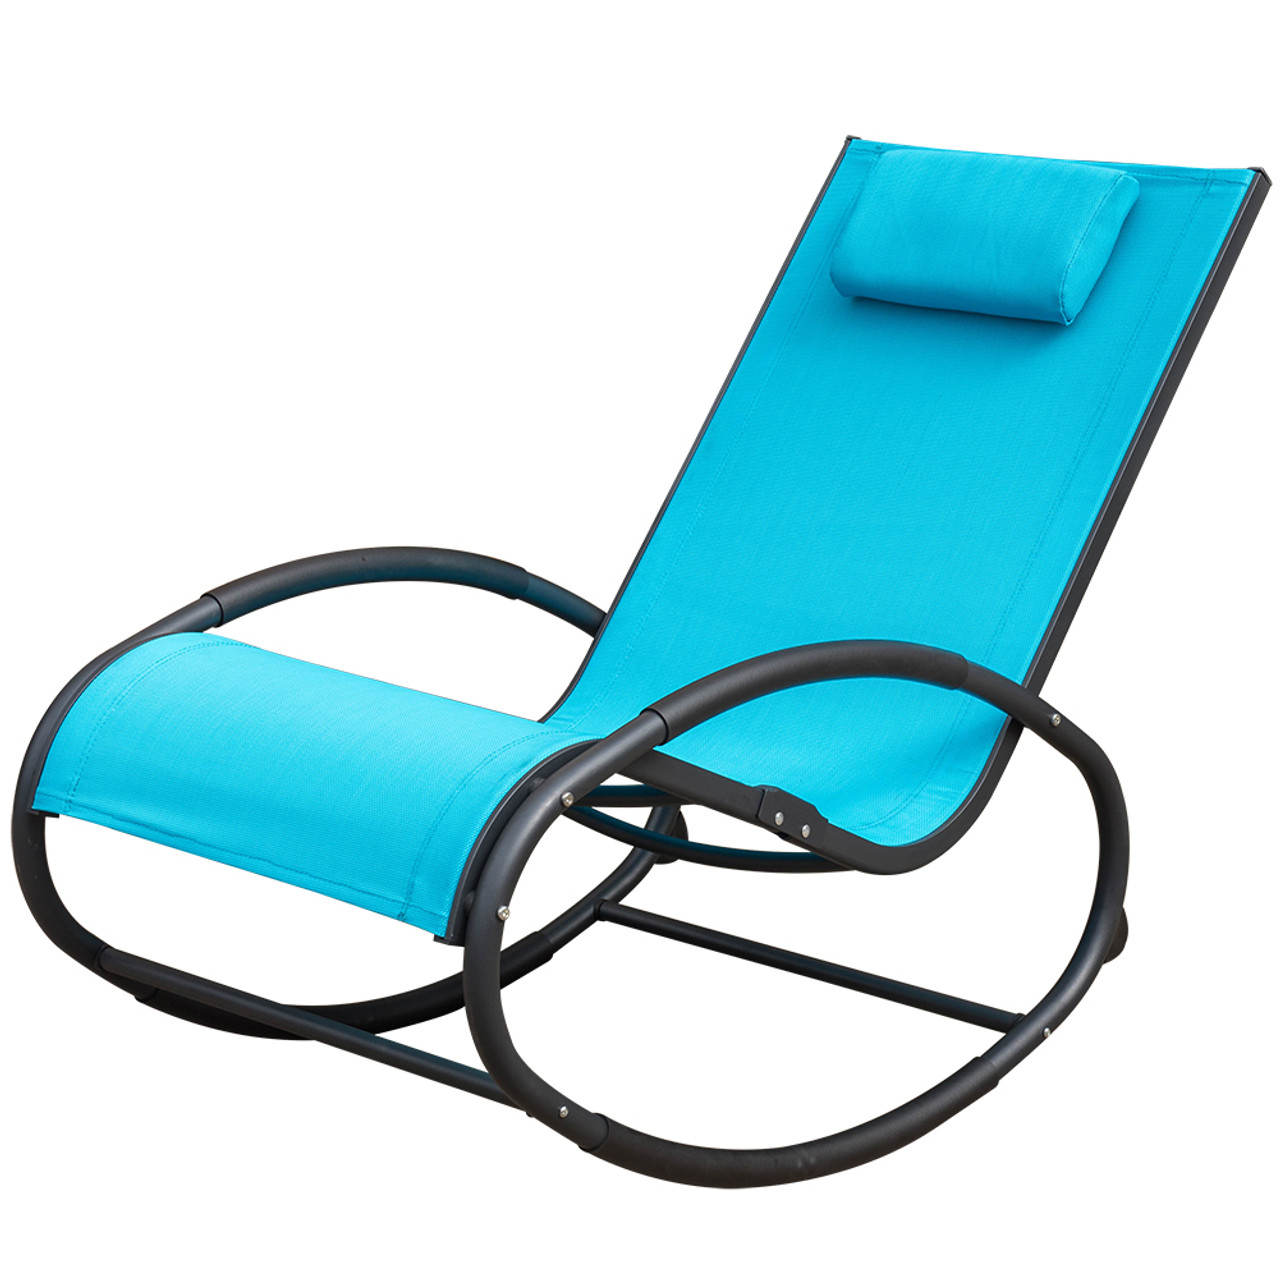 Awesome Patio Aluminum Zero Gravity Chair Orbital Rocking Lounge Chair With  Pillow,Capacity 250 Pounds,Blue